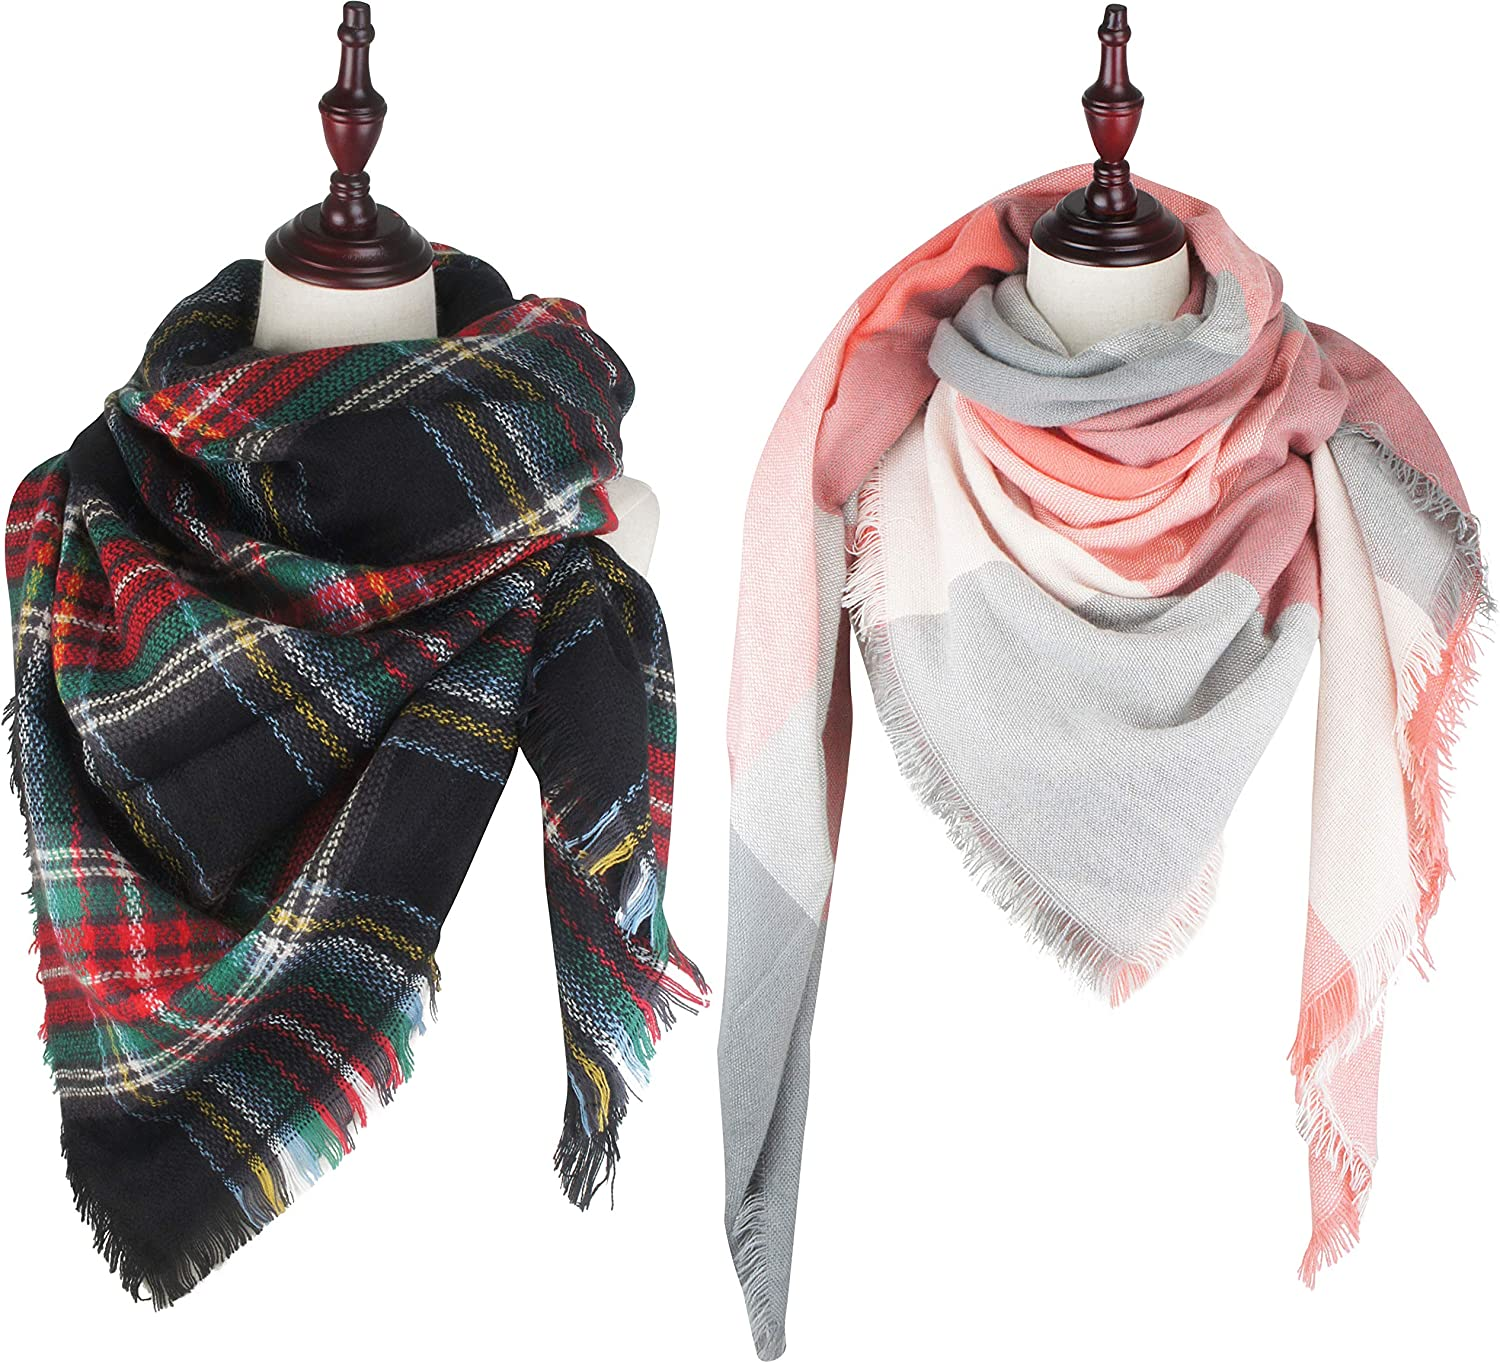 VIVIAN & VINCENT 2 Pack of Soft Classic Luxurious Blanket Tartan Square Scarf Wrap